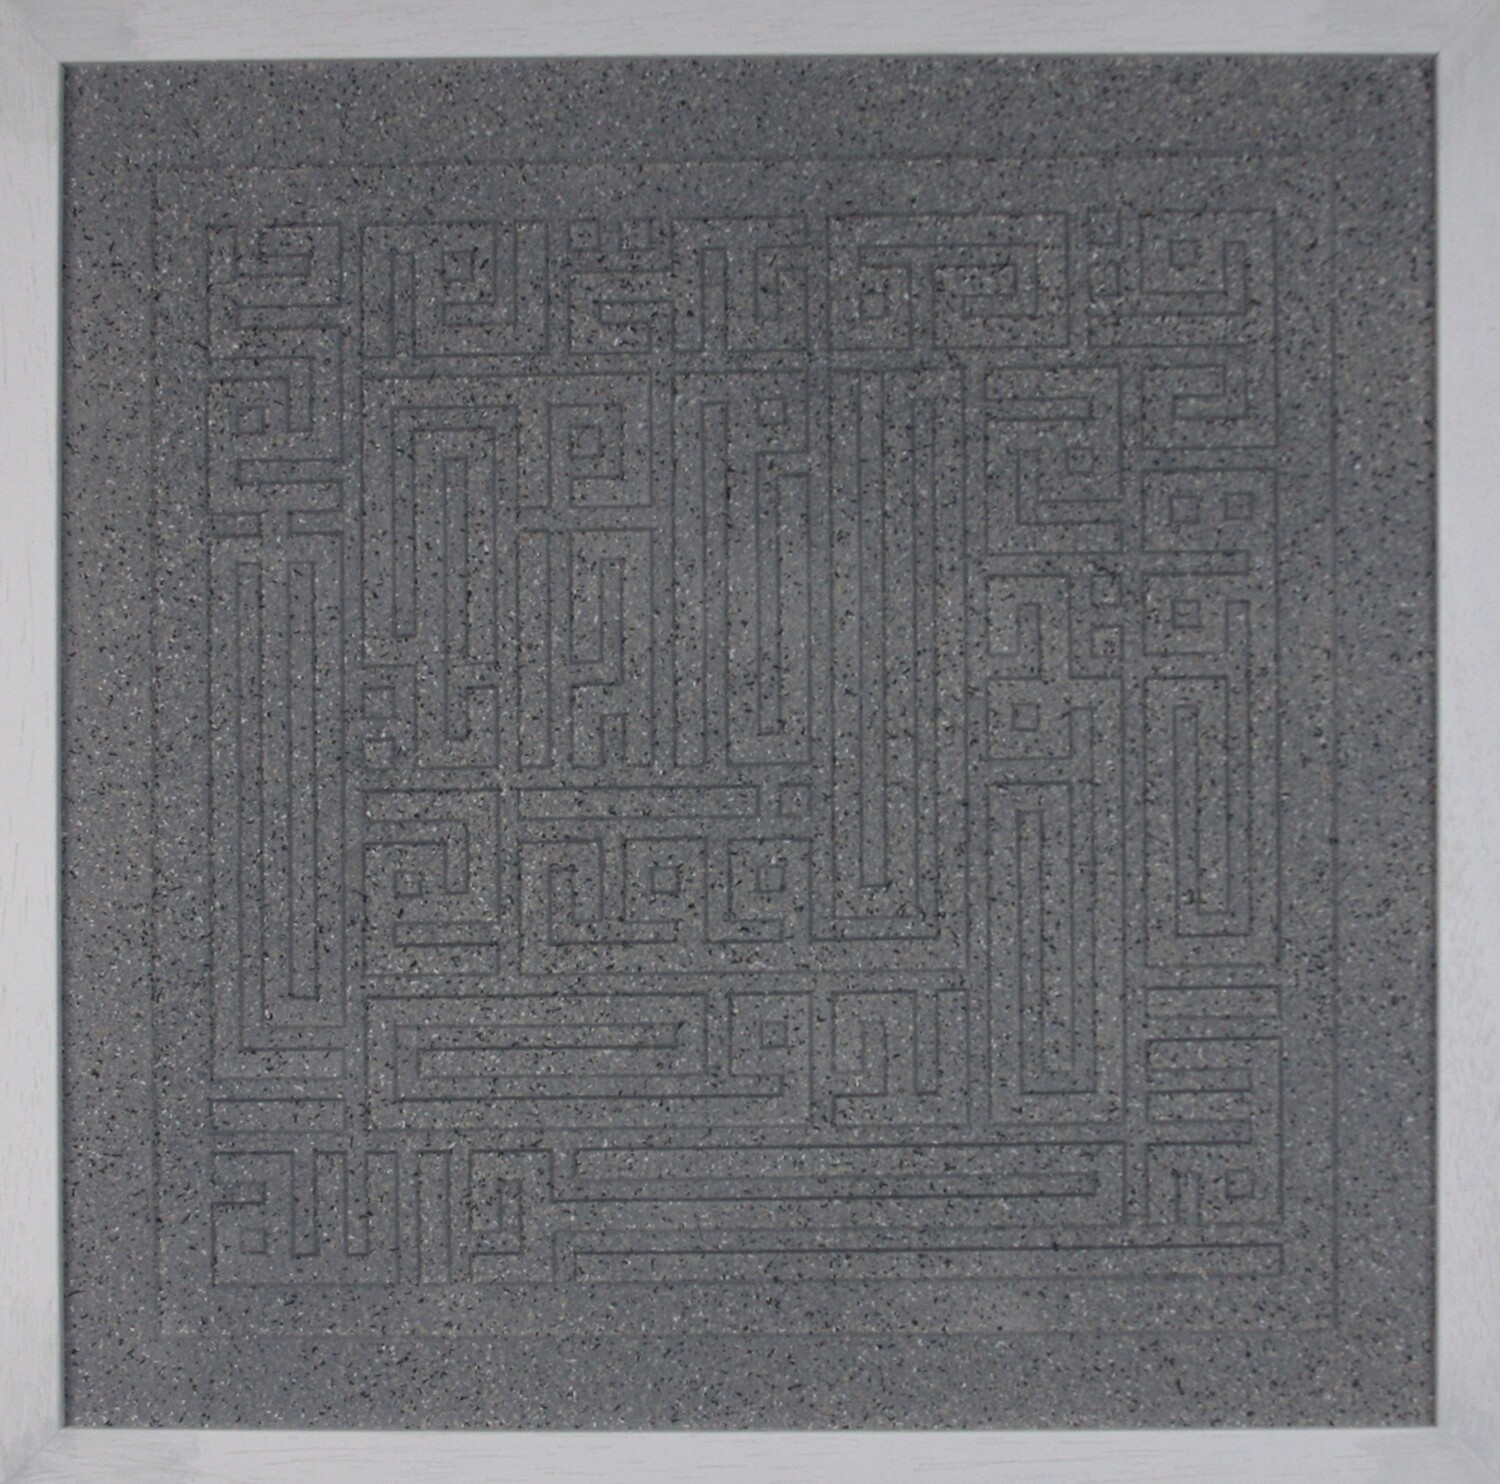 Surah Ikhlaas Grey Concrete Effect Bas Relief Kufic White Frame